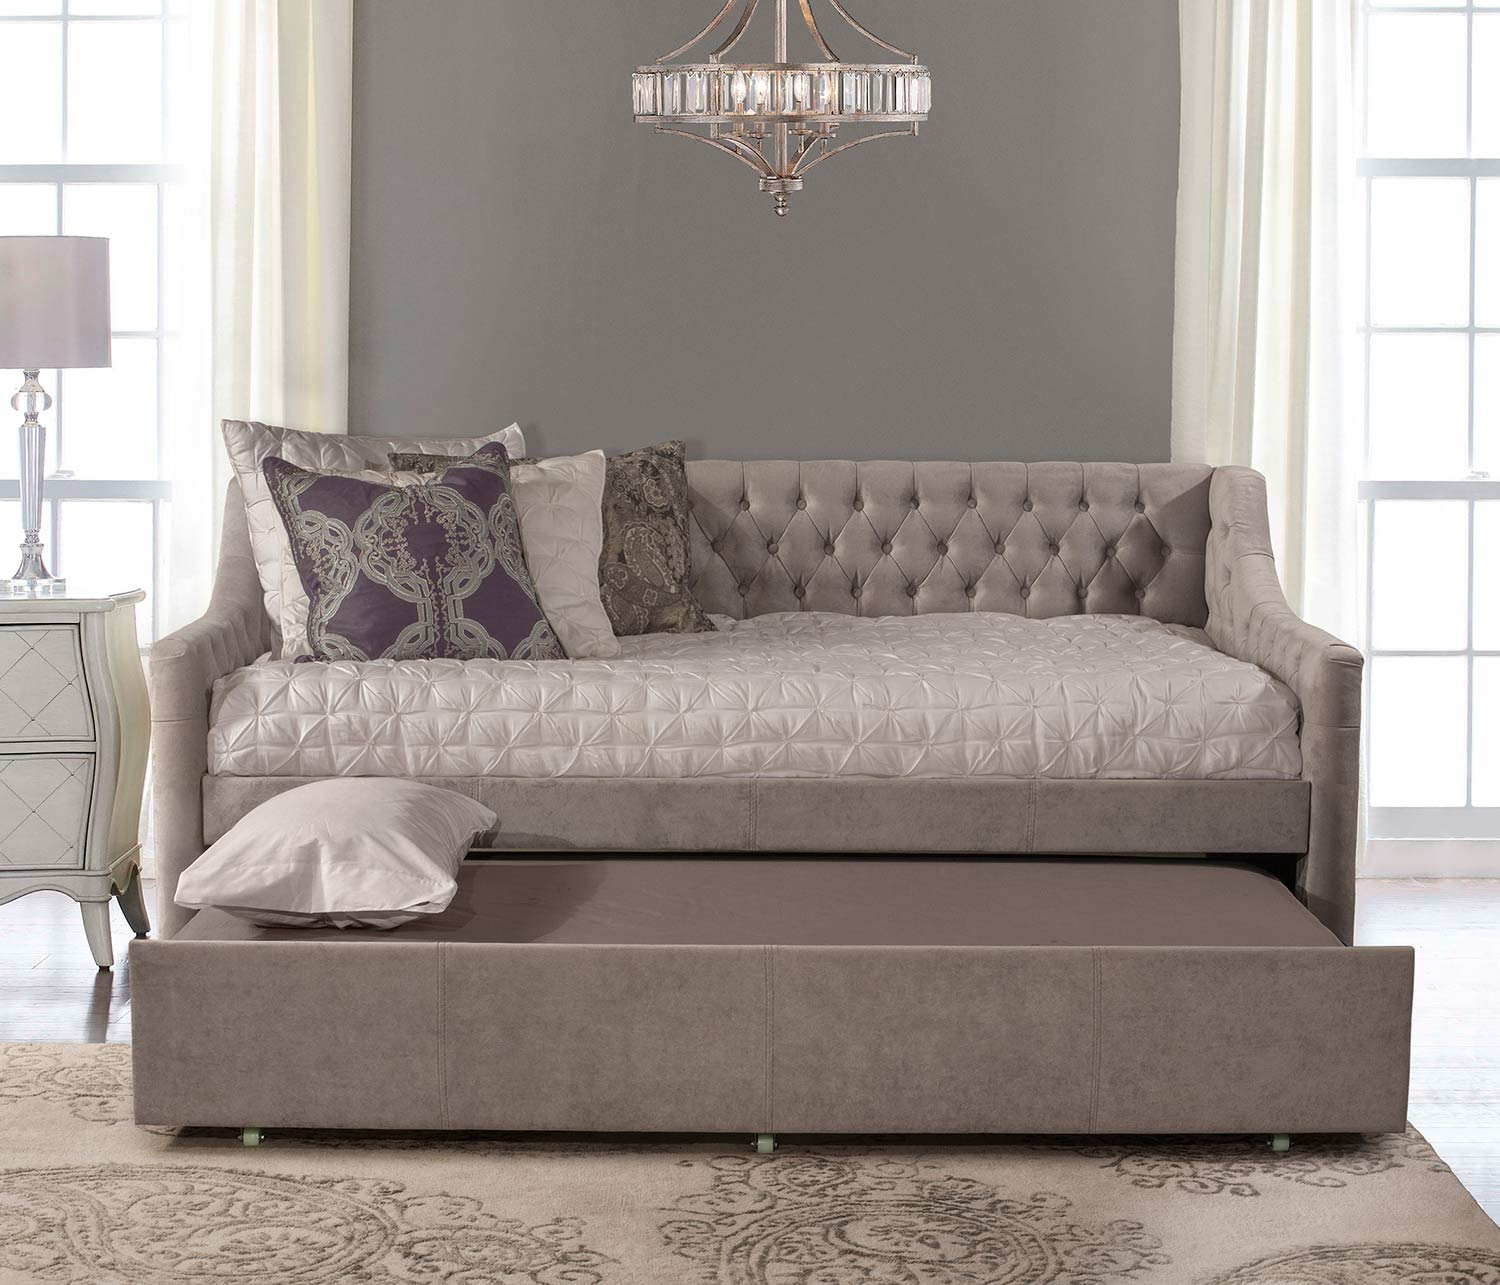 Hillsdale Jaylen Daybed with Trundle - Silver